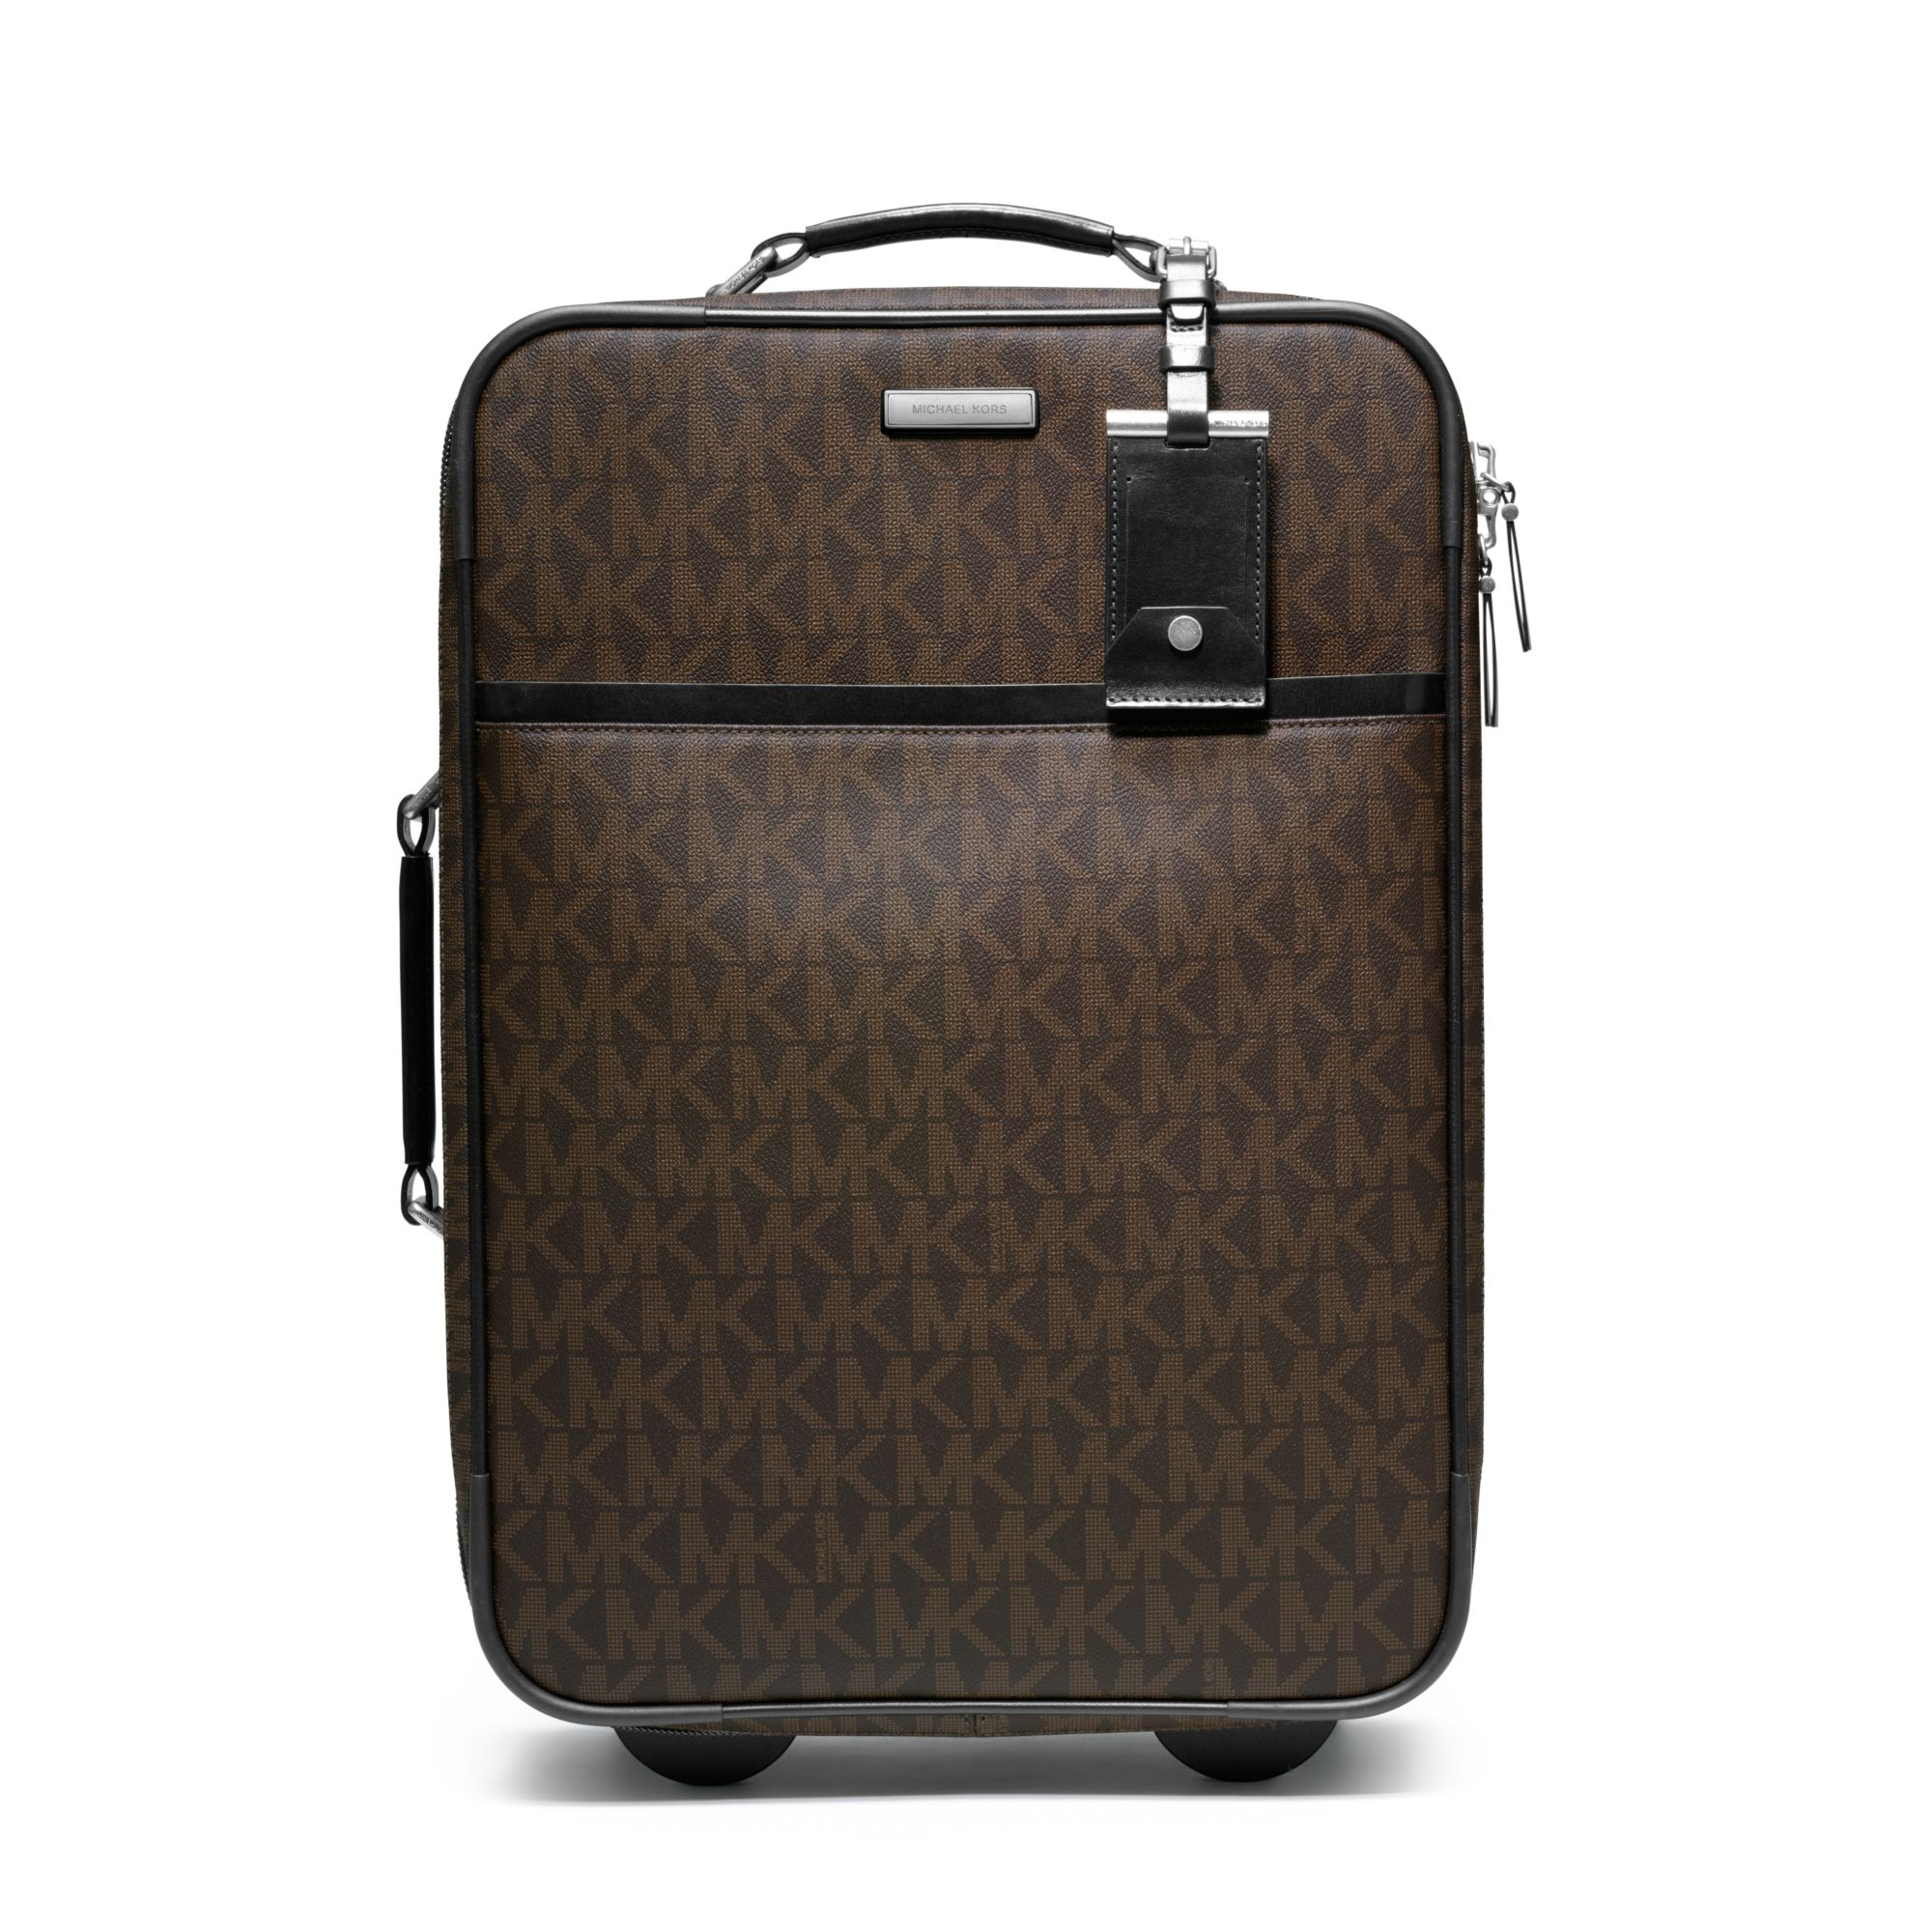 0b9302c66c72 Lyst - Michael Kors Jet Set Travel Logo Trolley Suitcase in Brown